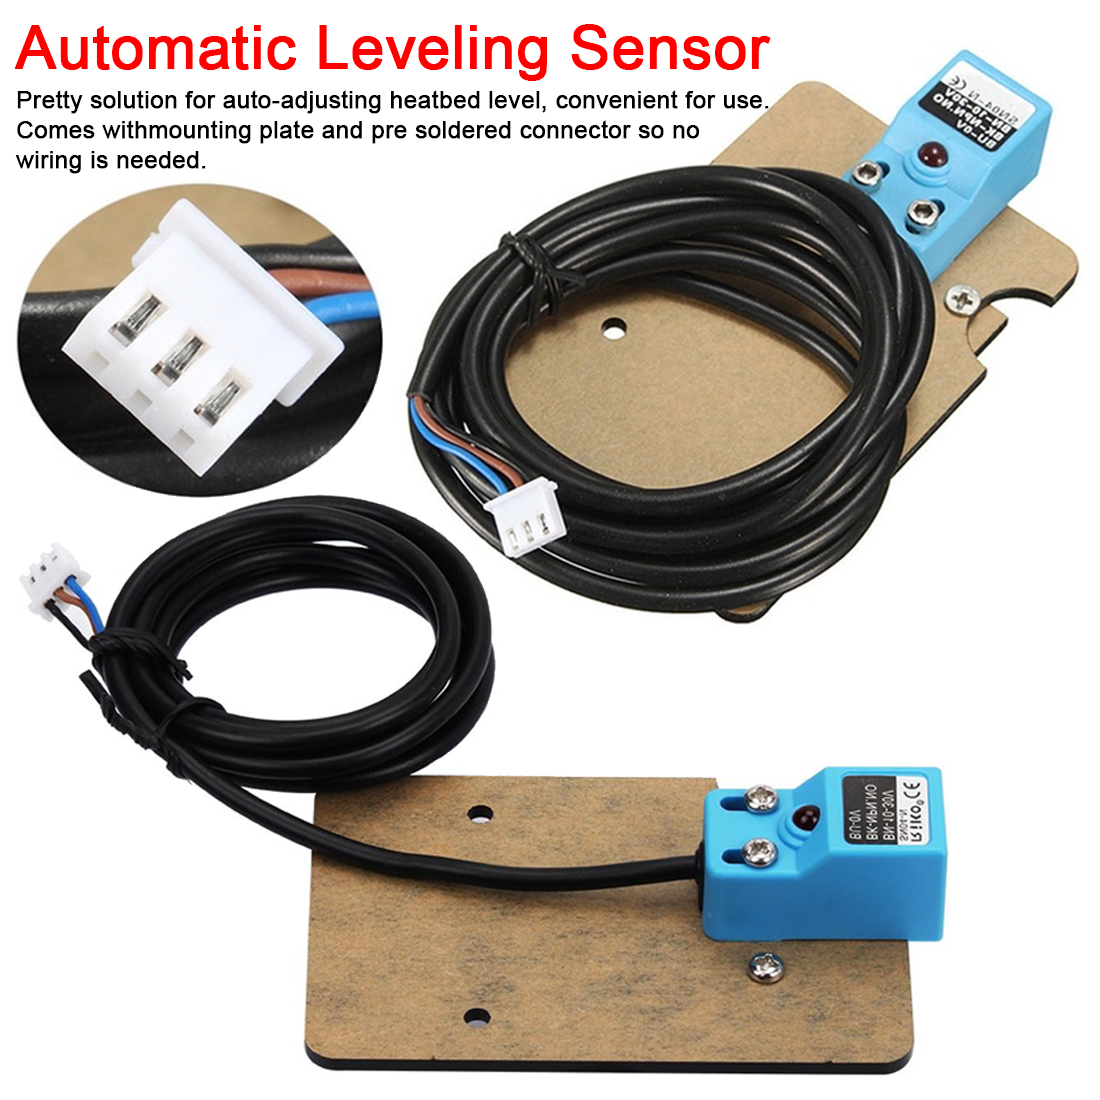 1 Set Of Automatic Leveling Position Sensor 3D Printer Part Accessories For Anet A8 1.75mm Pla Filament